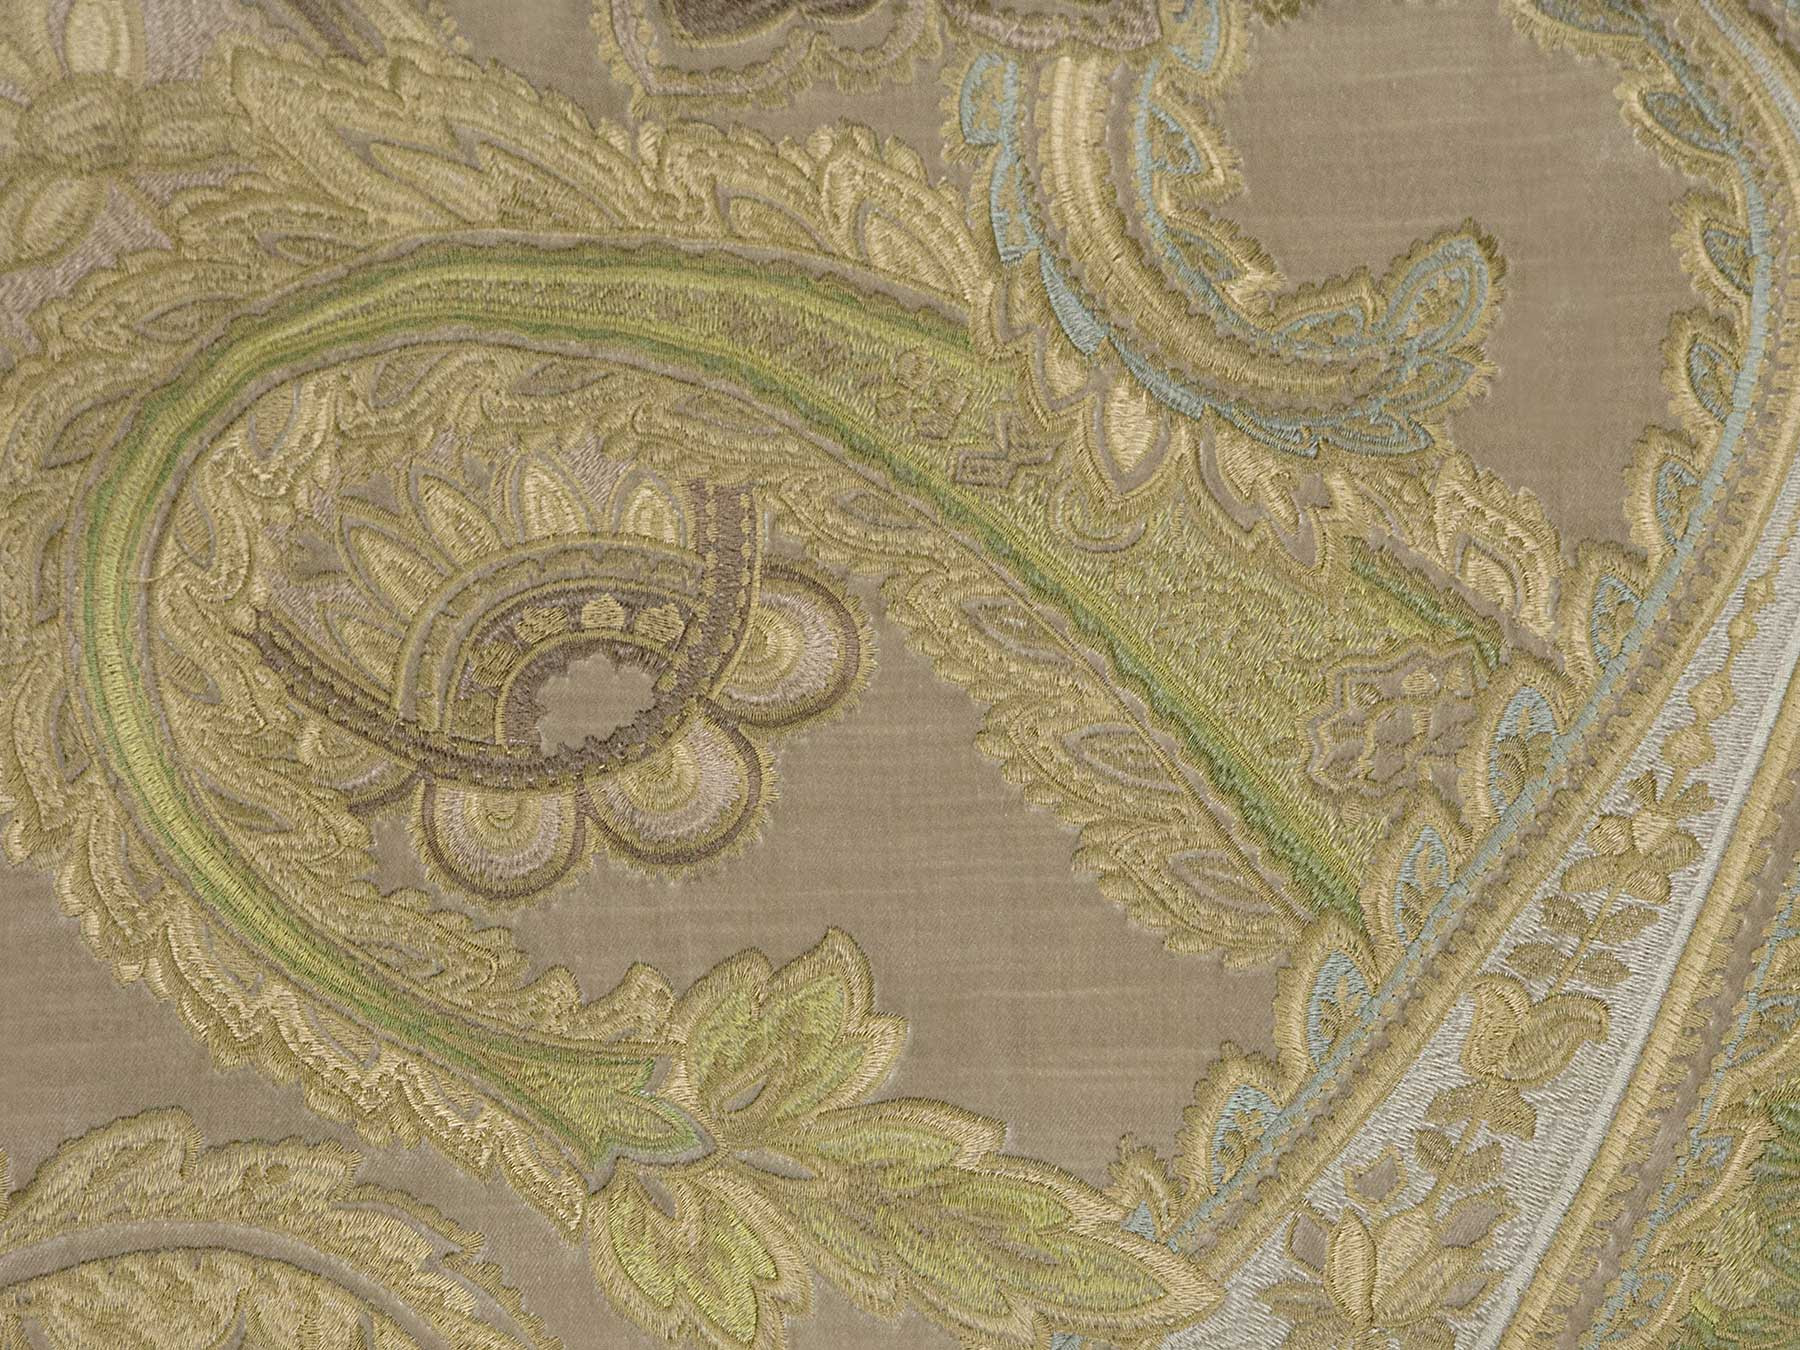 223/18 Tuileries/Beige-Green Коллекция: Showroom collection Part 3